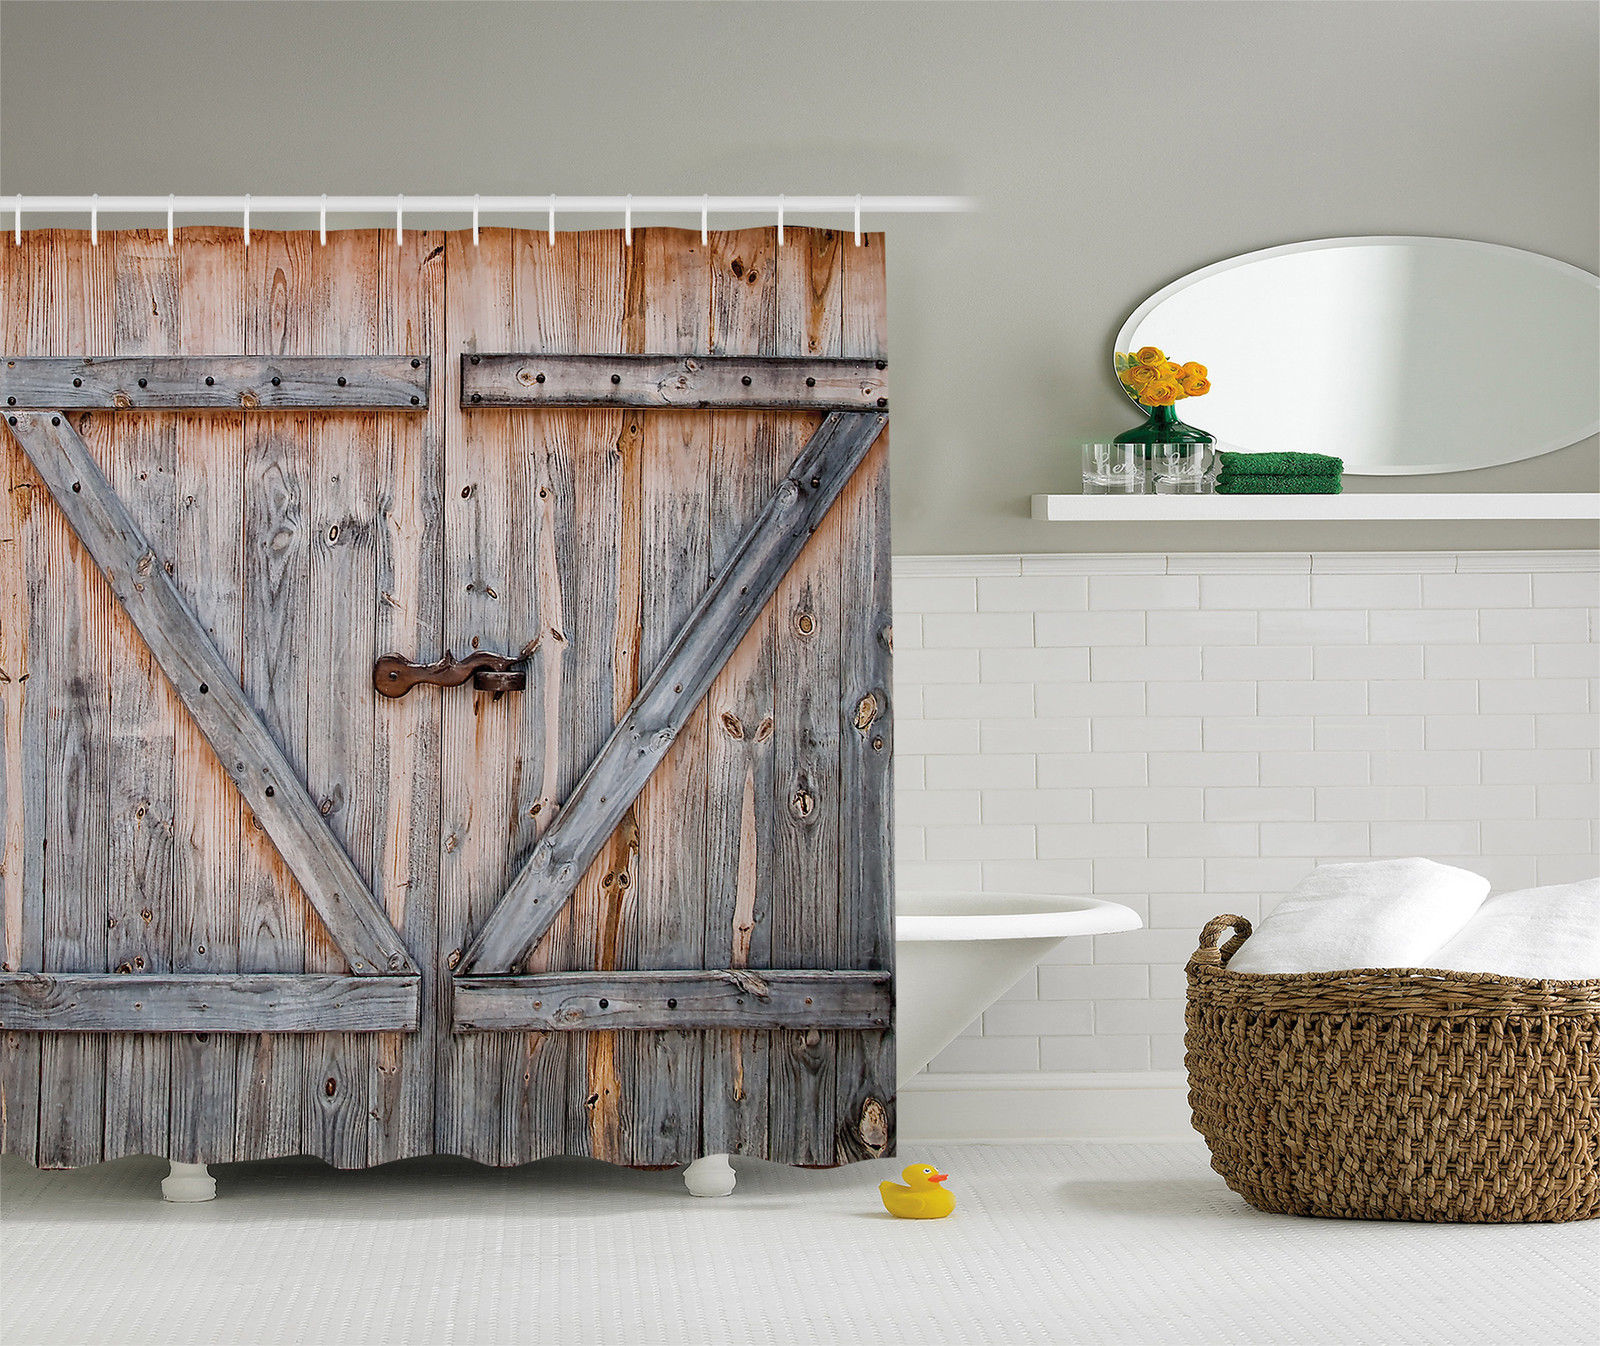 Country Decor Old Wooden Garage Door American Style Vintage Shower Curtain Brown by Kozmos